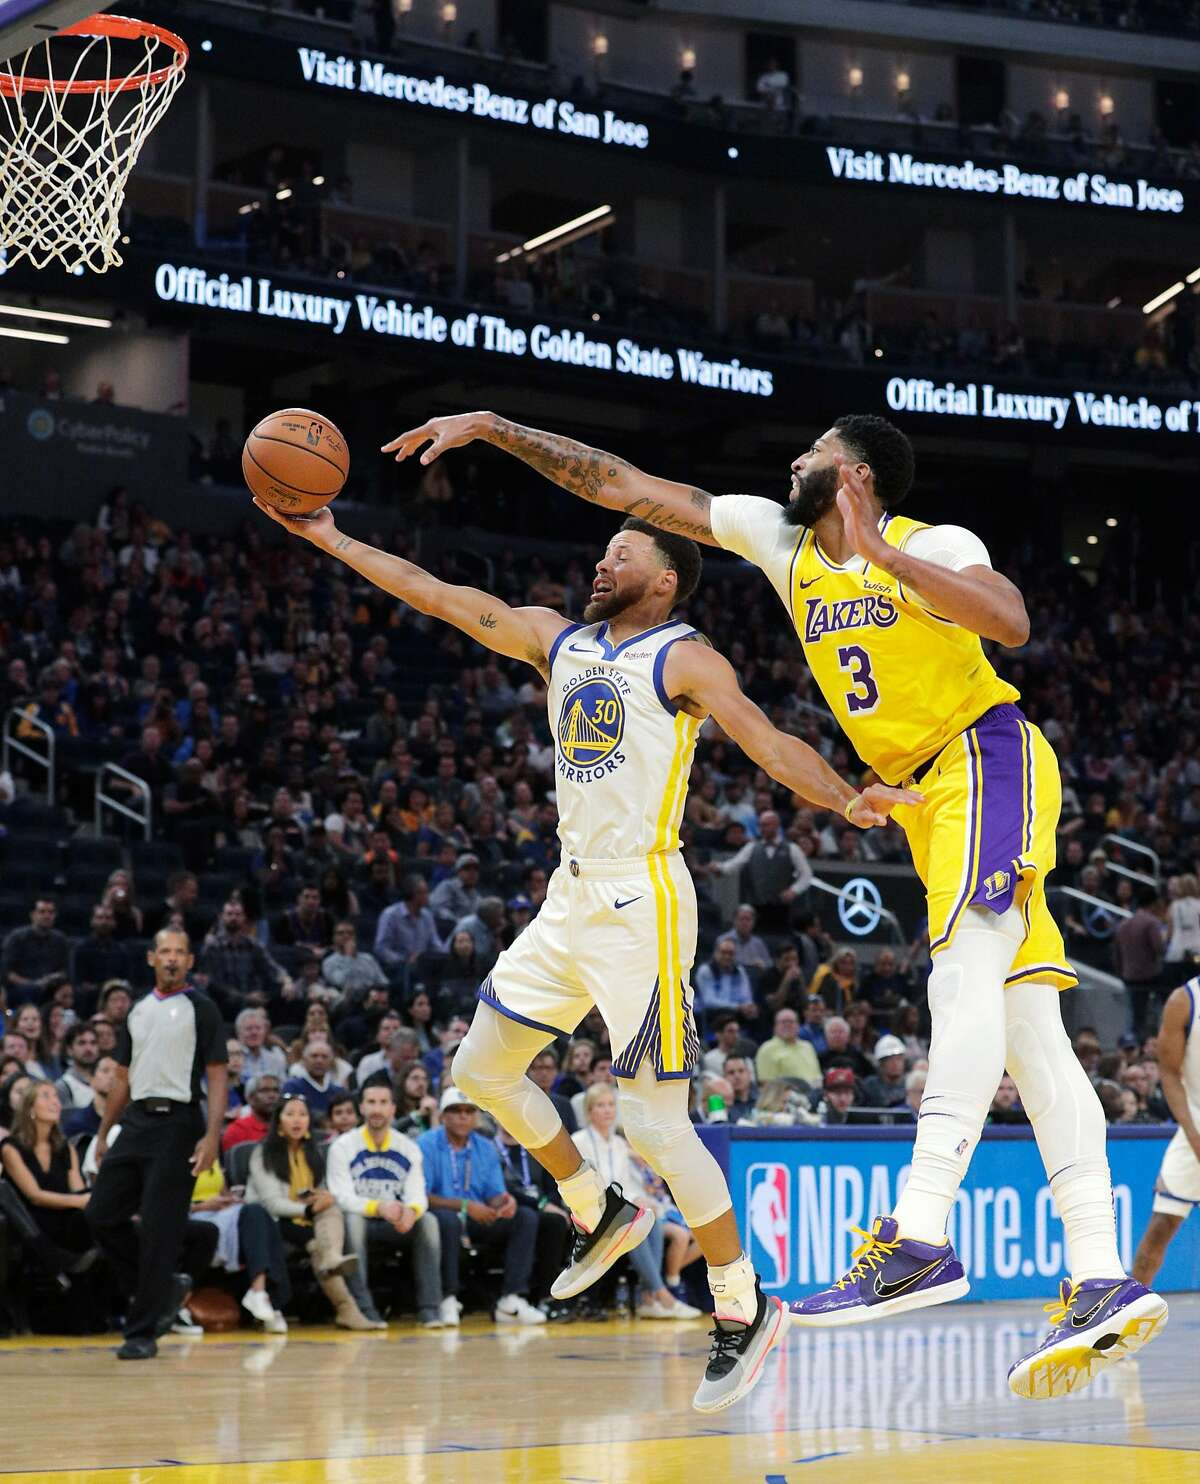 Anthony Davis (3) tries to defend against Stephen Curry (30) In the first half as the Golden State Warriors played the Los Angeles Lakers in a pre-season game at Chase Center in San Francisco, Calif., on Saturday, October 5, 2019.